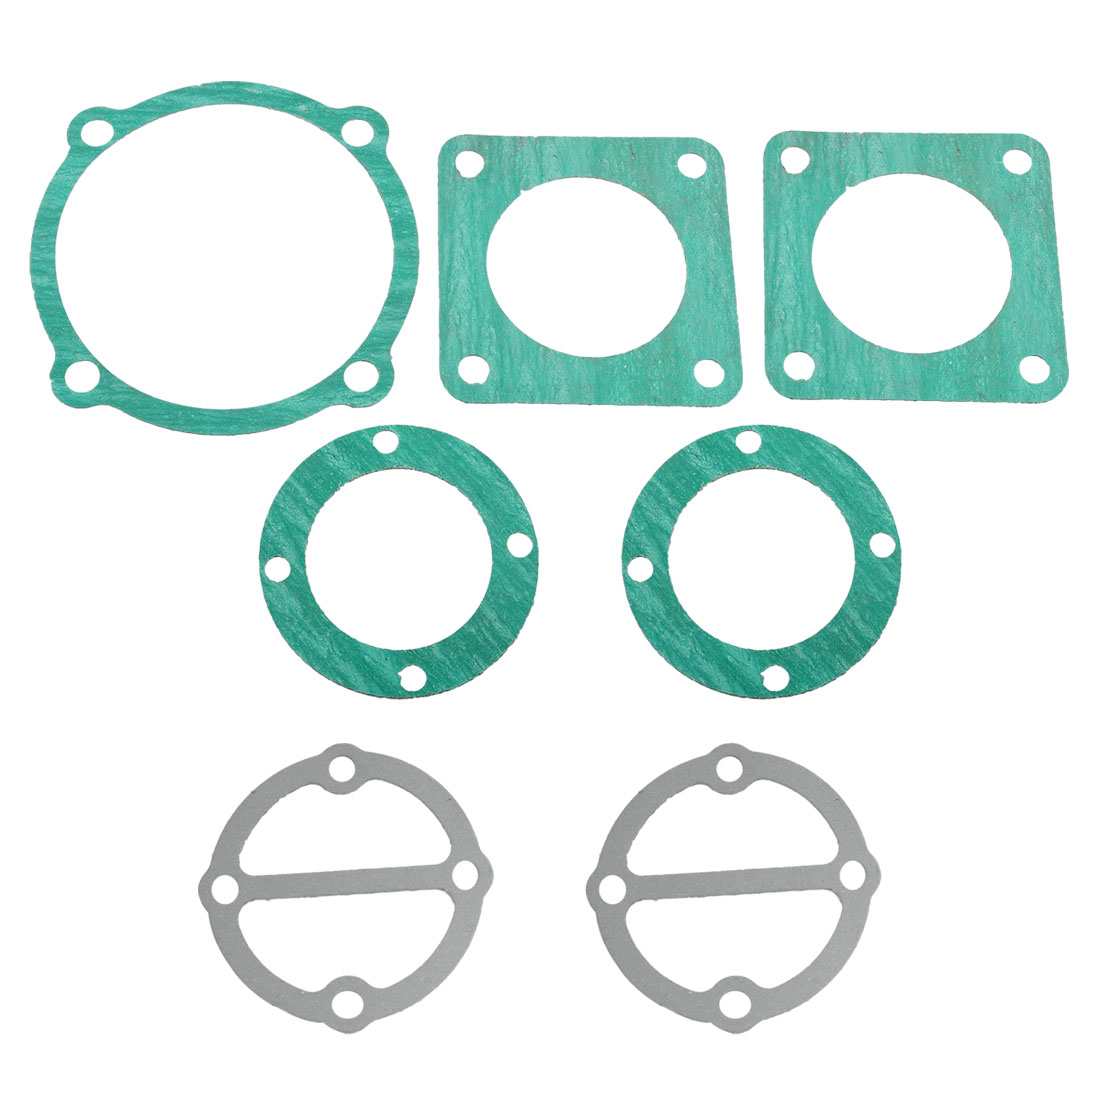 7 Pcs Paper Air Compressor Cylinder Head Base Valve Plate Sealing Gaskets